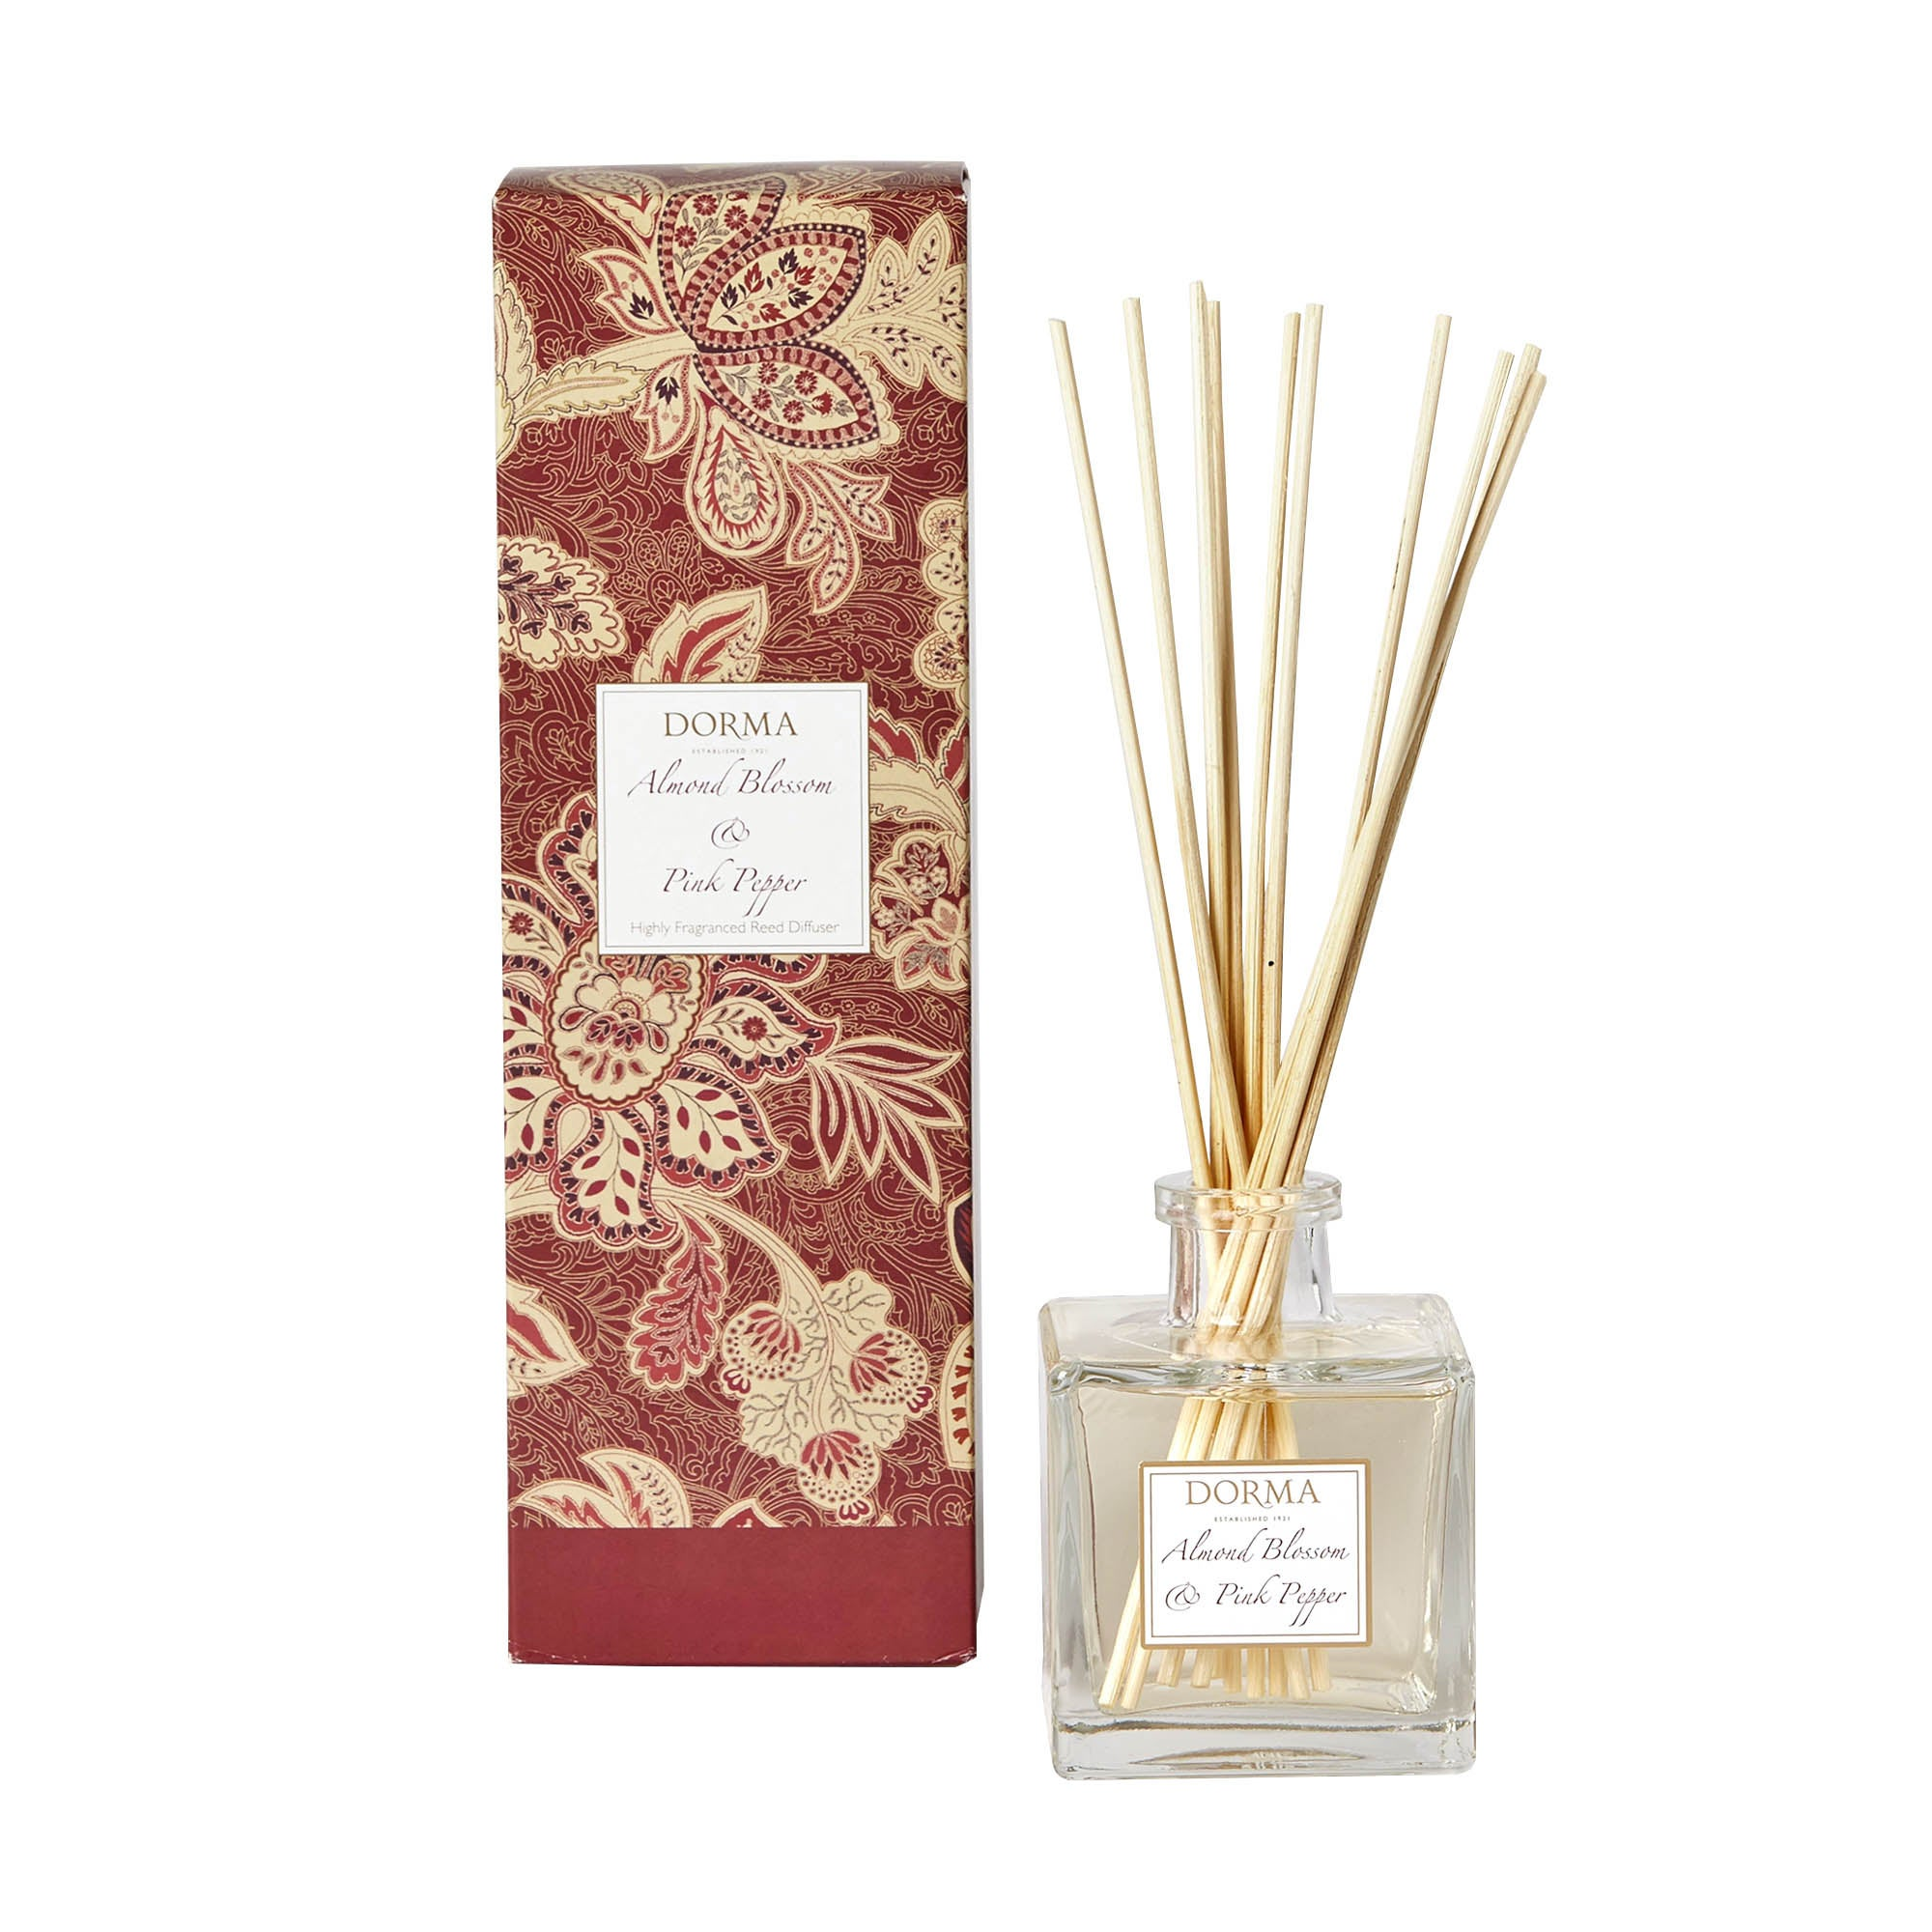 Dorma Almond Blossom and Pink Pepper 200ml Reed Diffuser